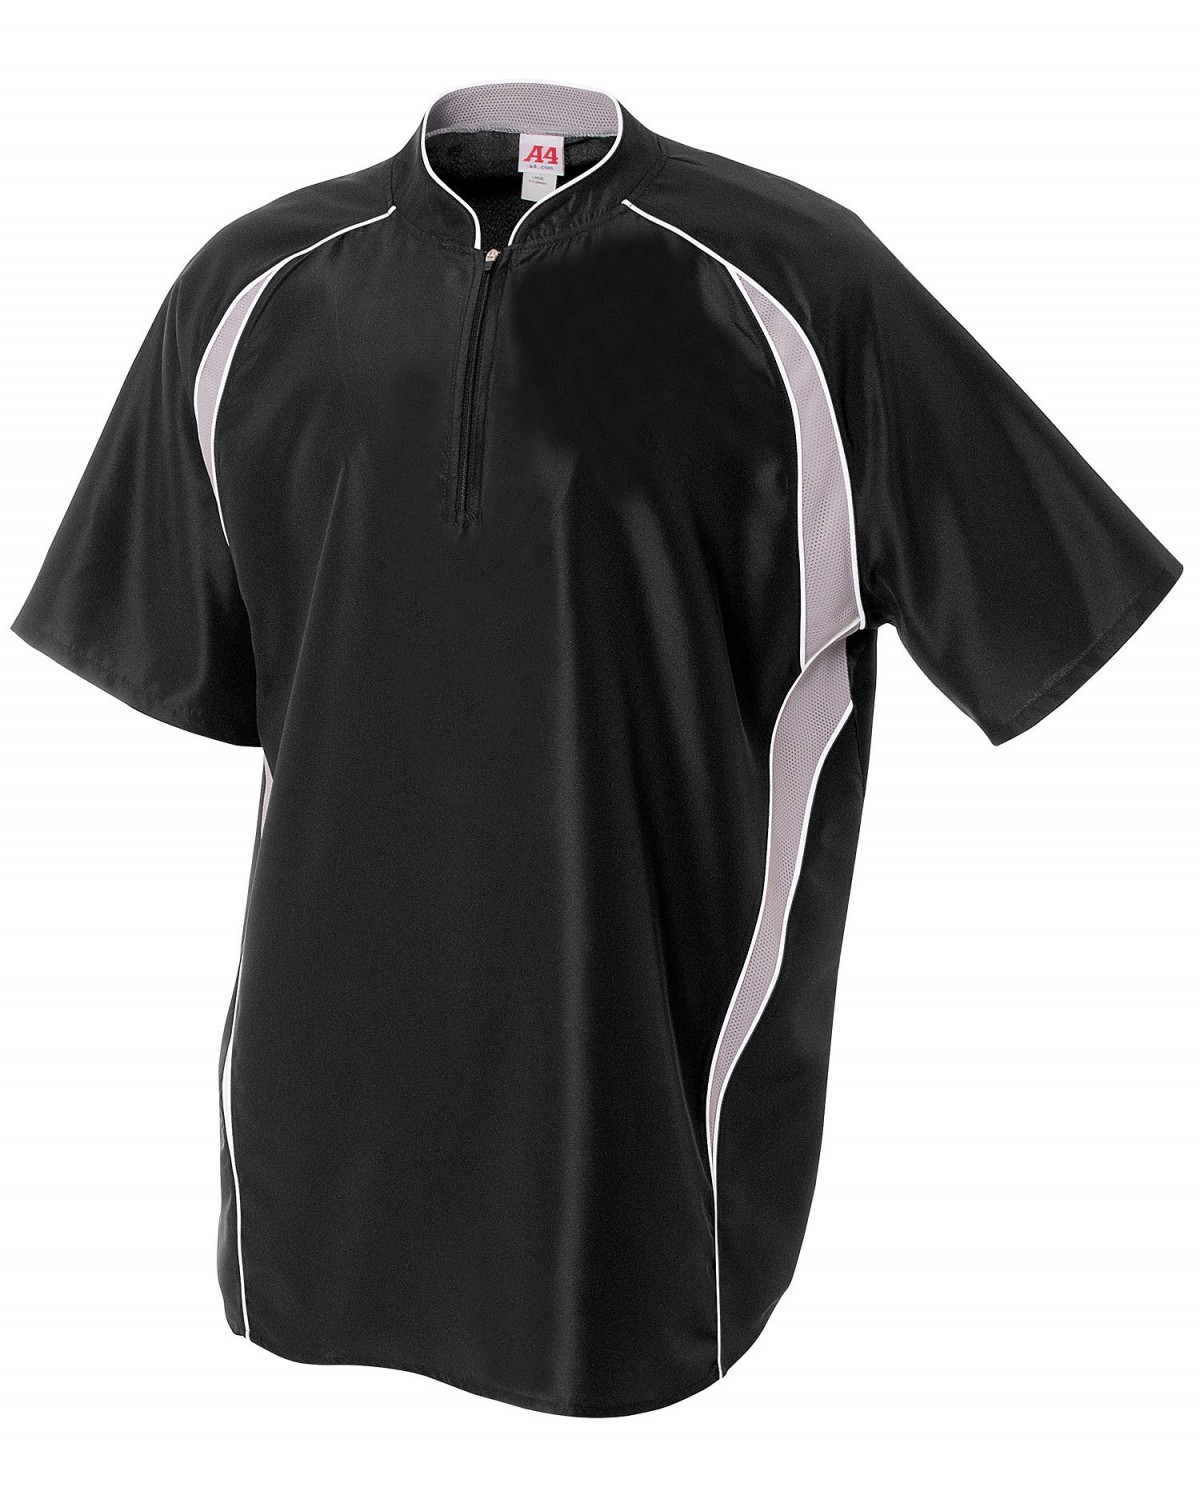 BG1468 Badger Sport Steel Heather/Black